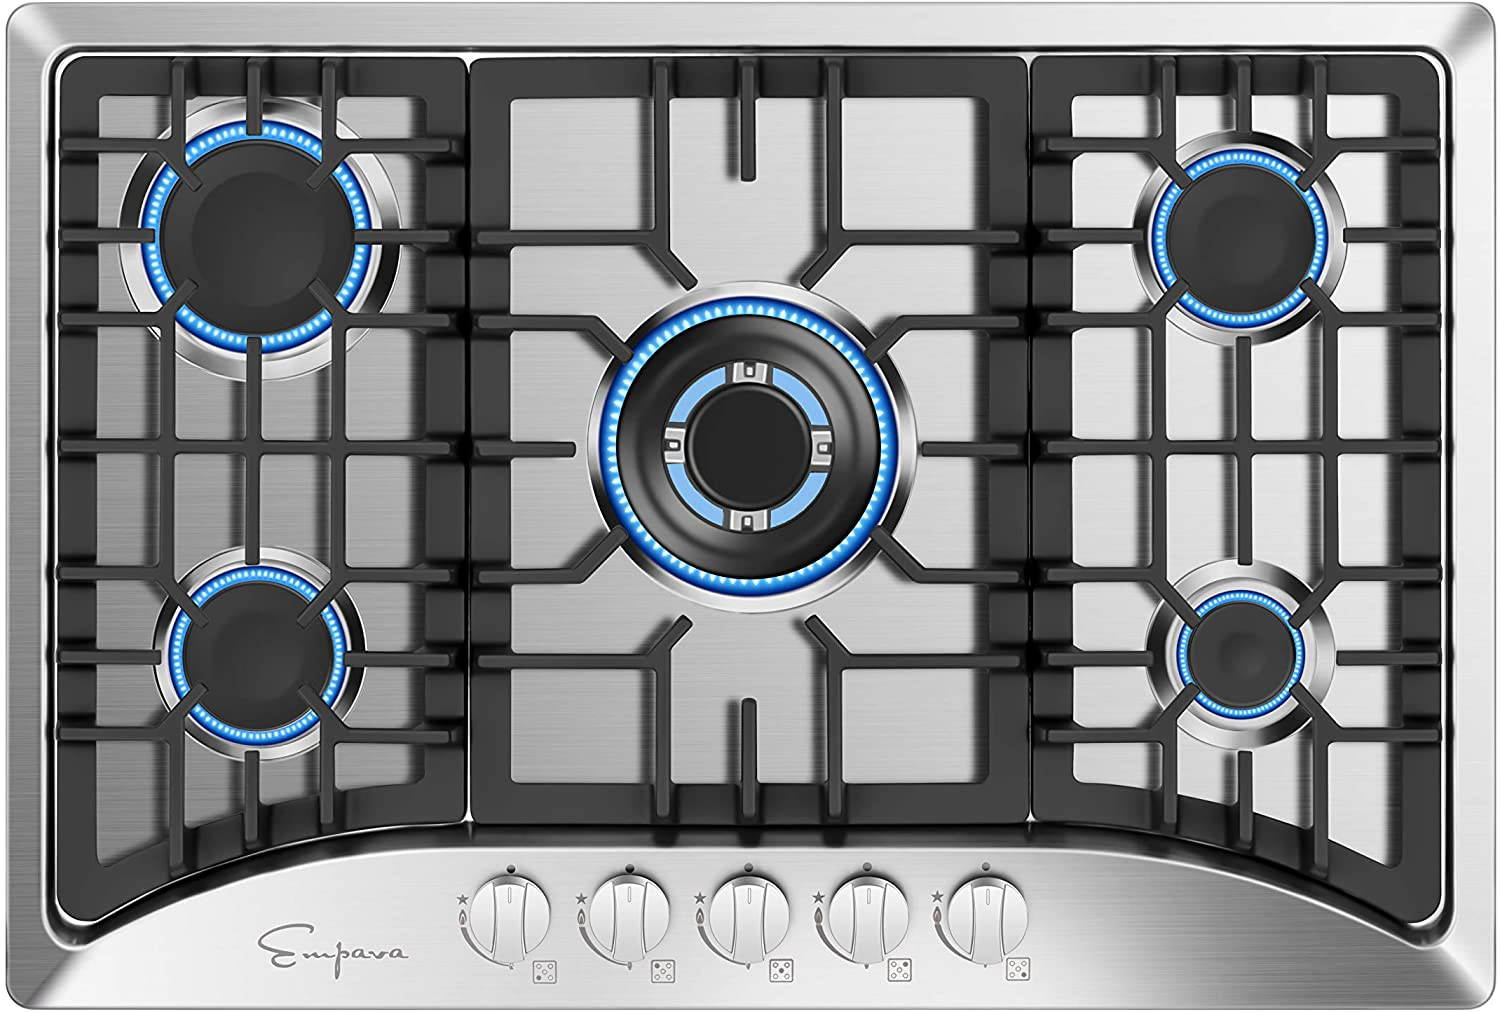 Empava 30 inch Gas Stove Cooktop, Silver